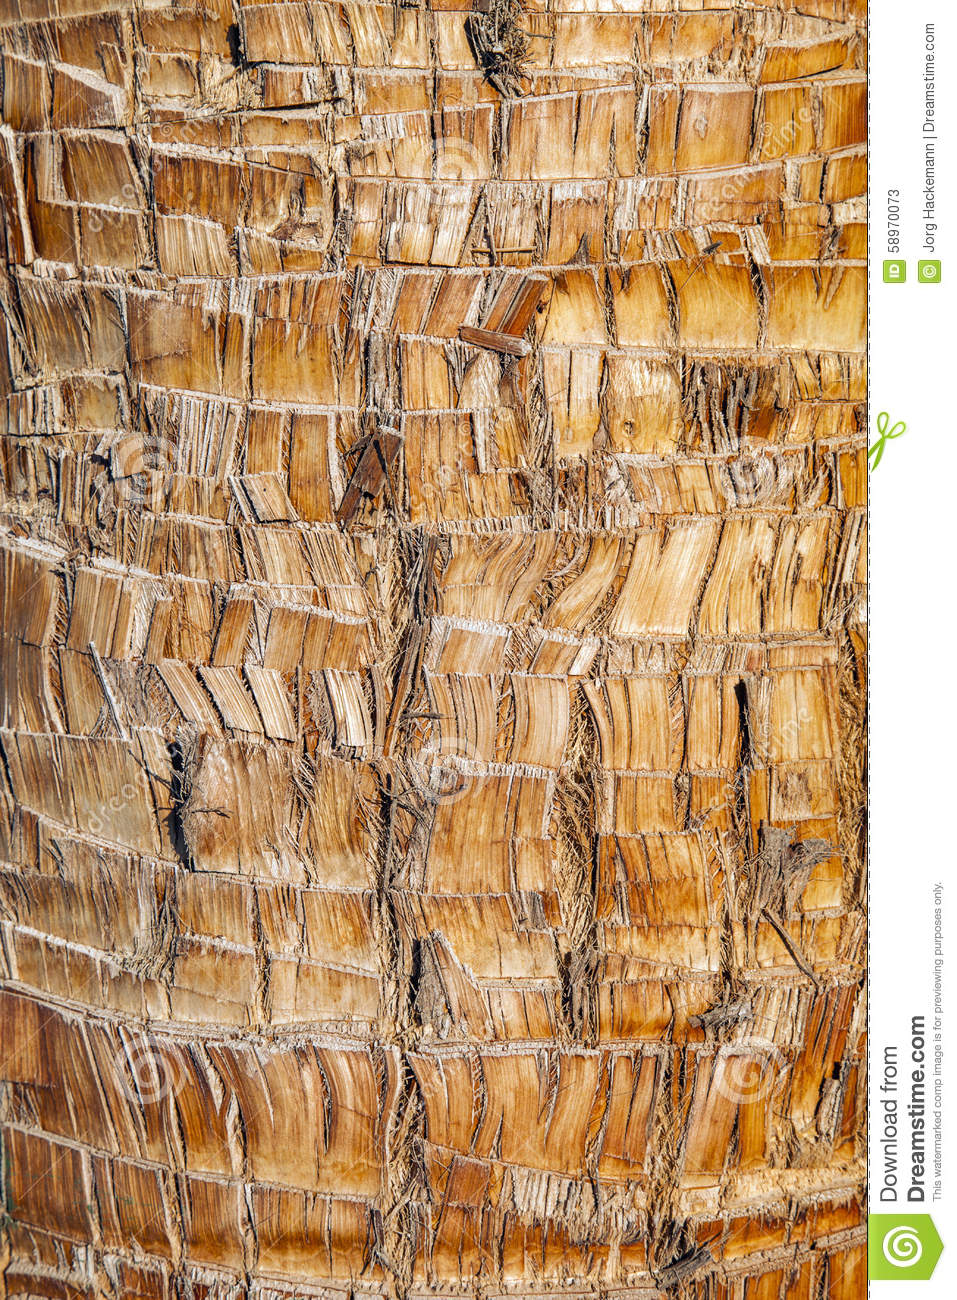 Rough Texture Background: Rough Brown Palm Tree Wood Bark Natural Texture Background